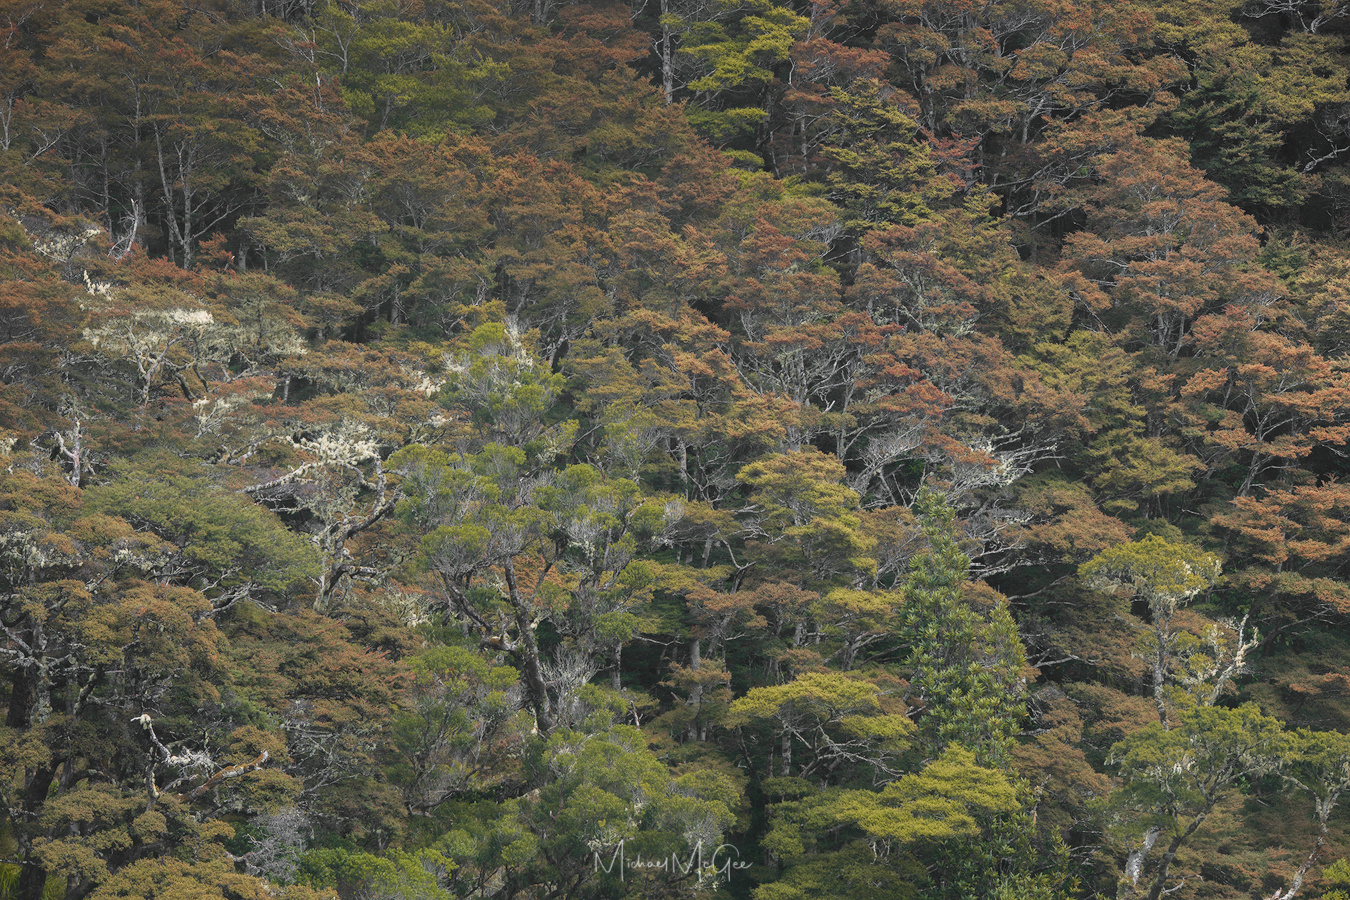 Portraits of New Zealand Rainforest (4) by Michael McGee